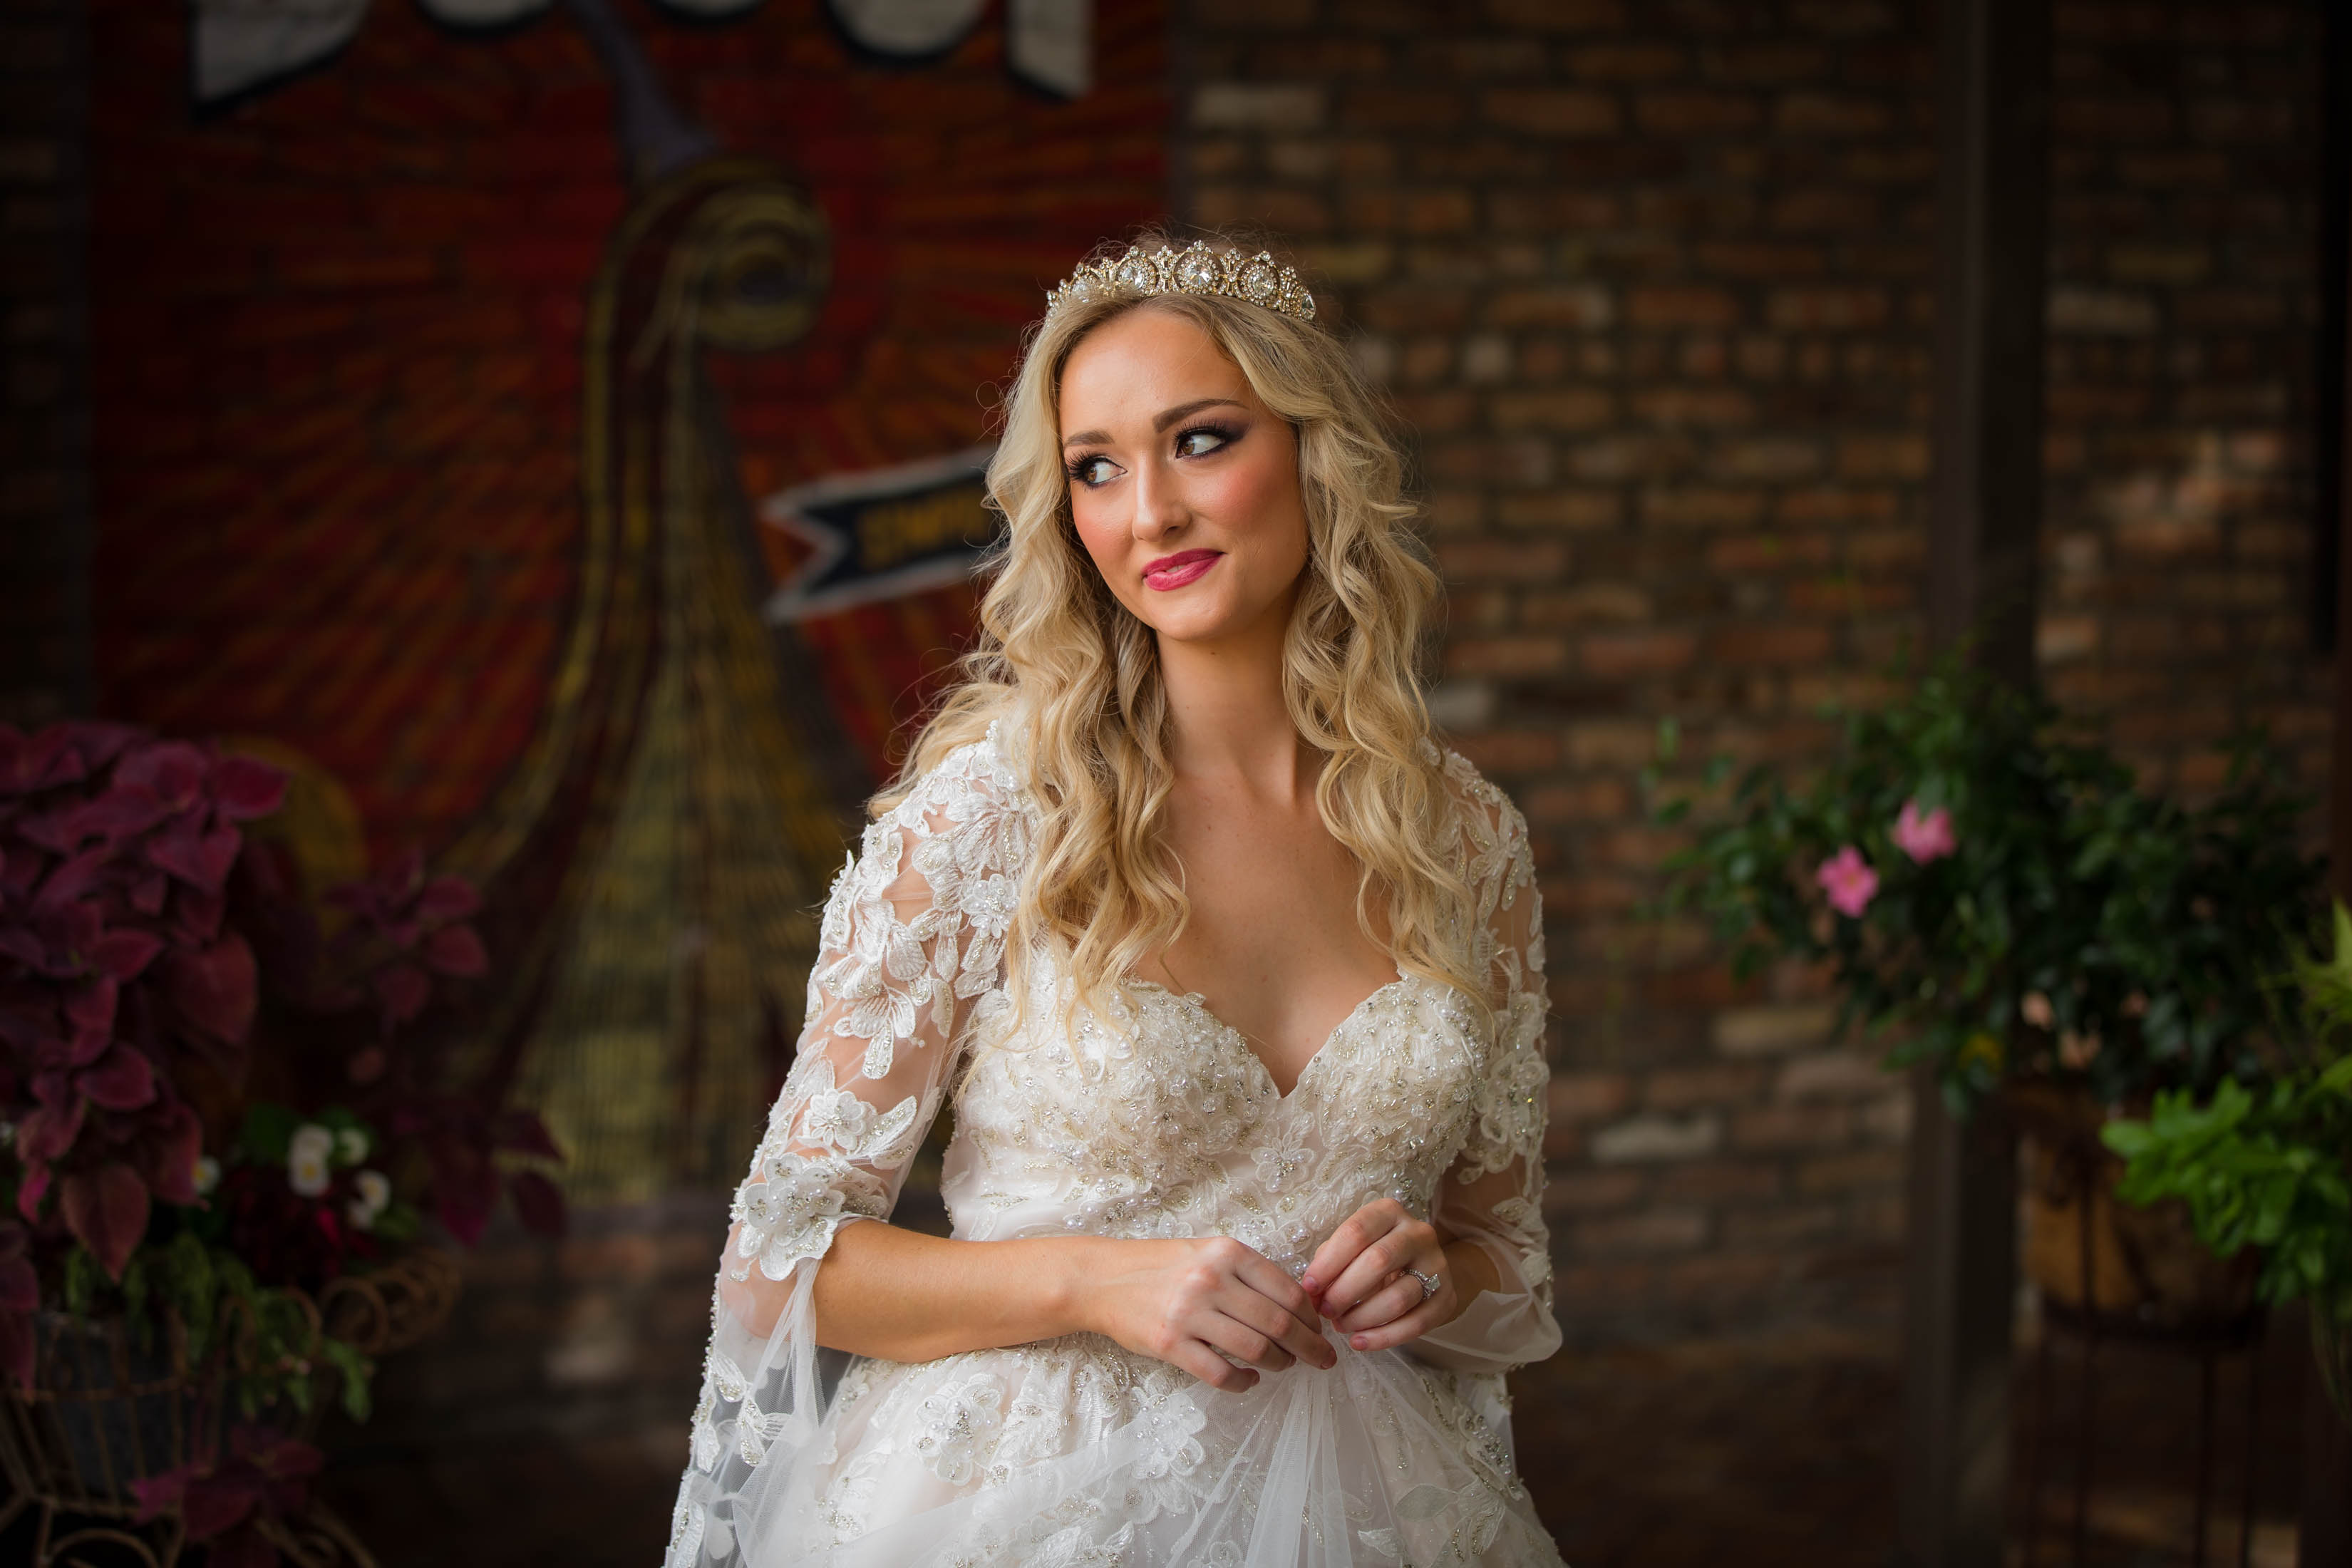 ROSINA-DIBELLO-WEDDING-PHOTOGRAPHER-SOUT